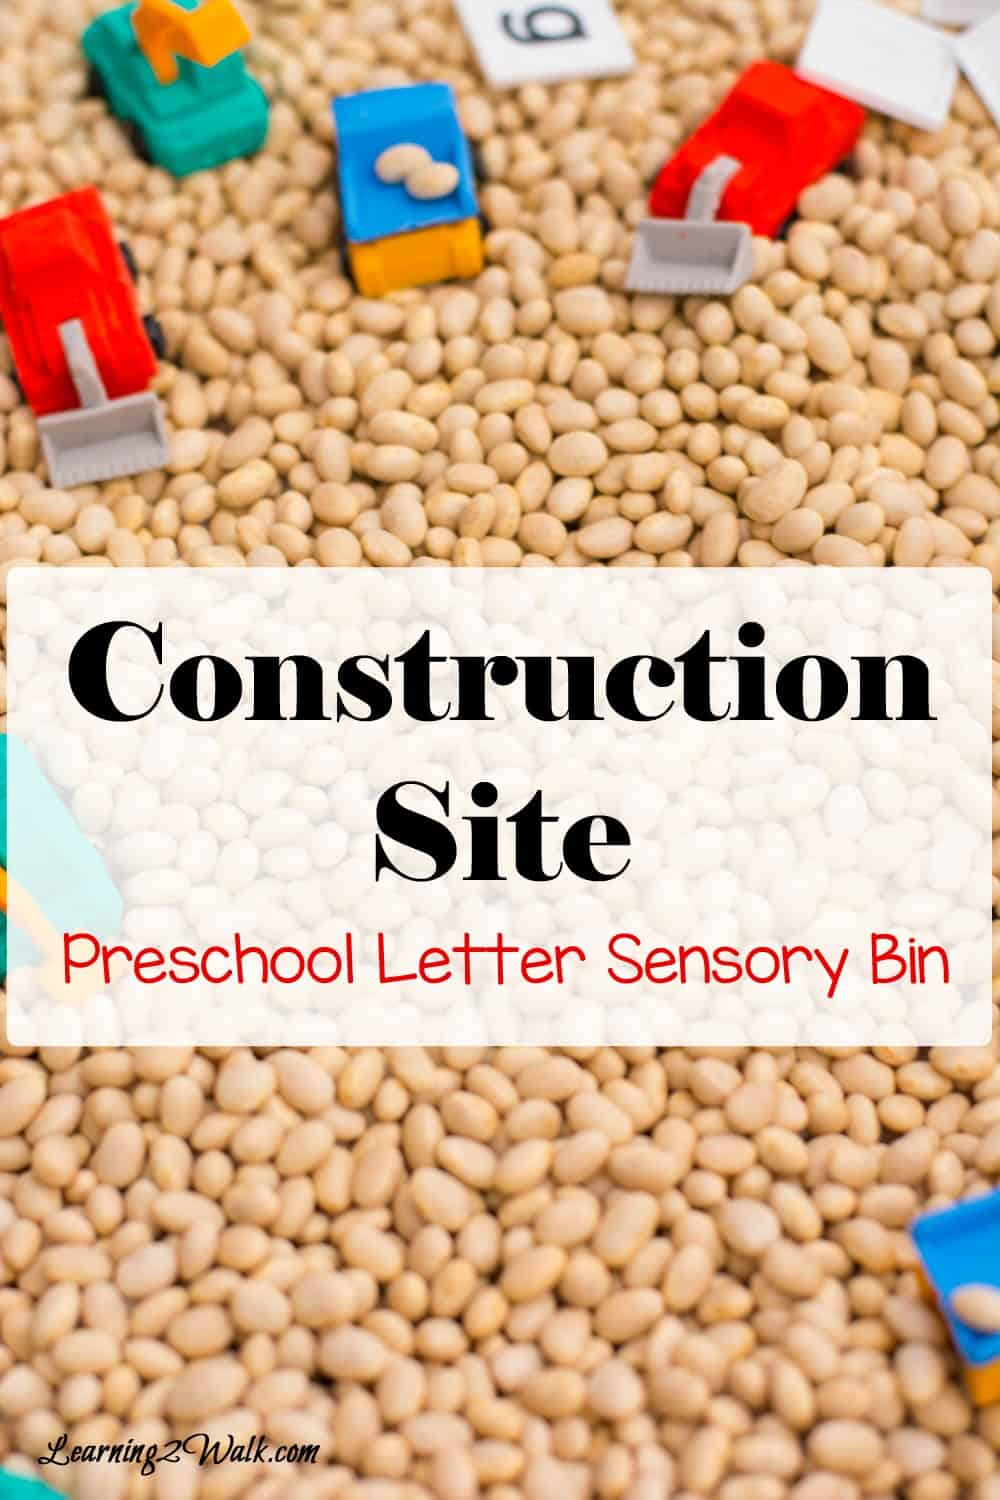 Construction Site Preschool Letter Activity Sensory Bin